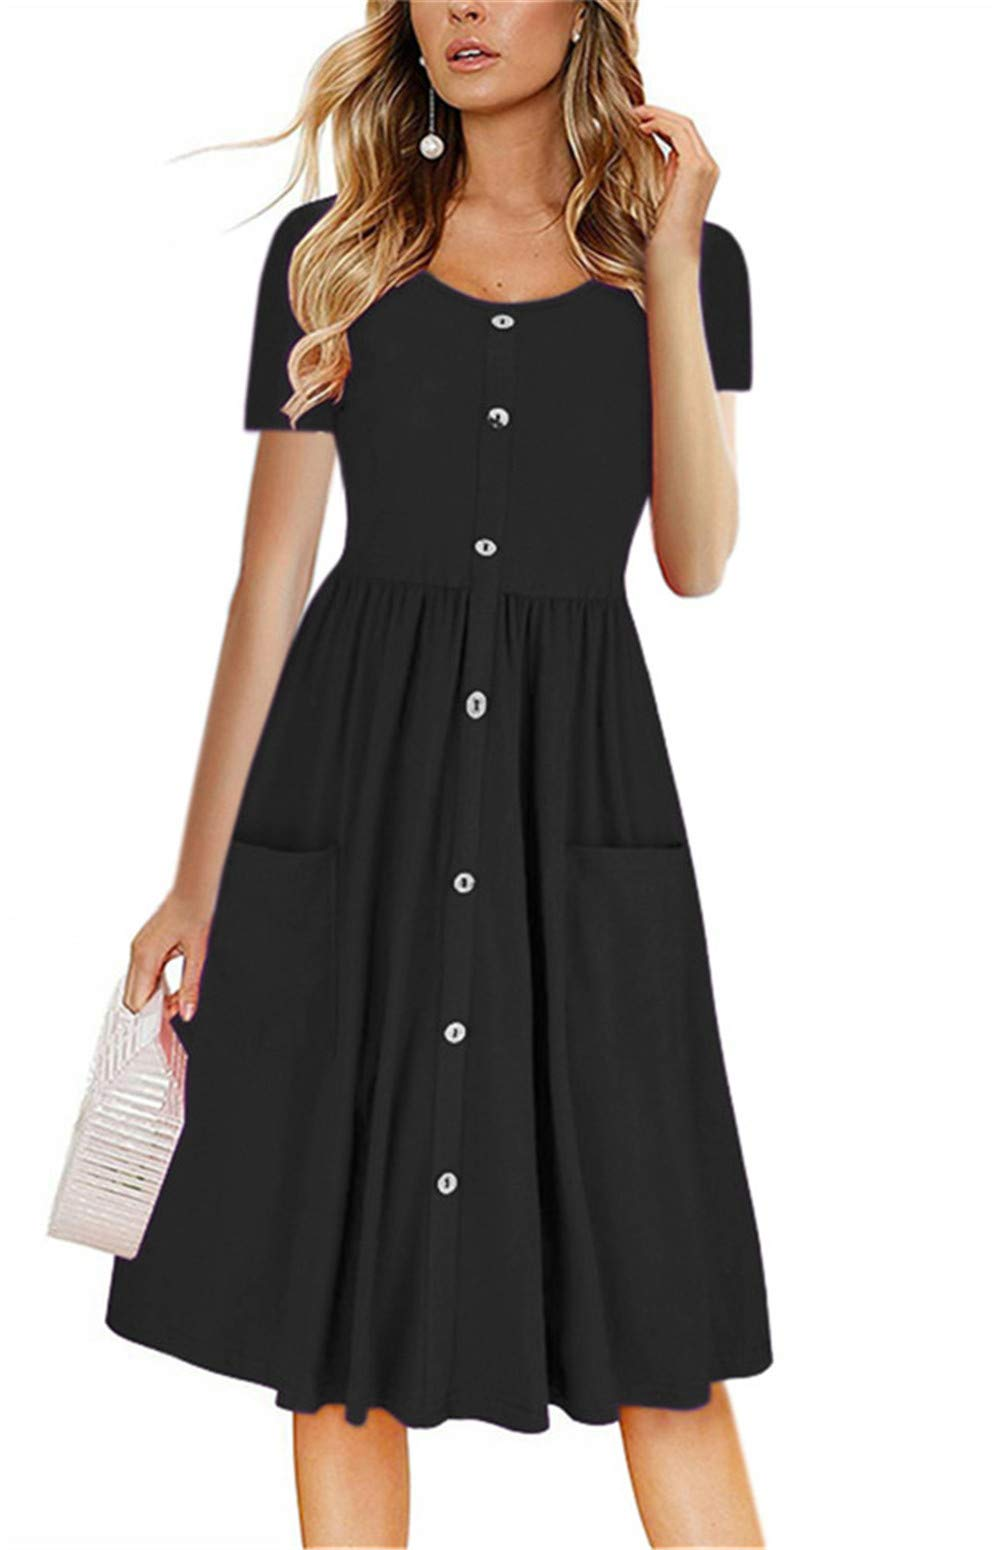 LAMISSCHE Womens Summer Casual Short Sleeve V Neck Button Down A-line Dress with Pockets(Black,M) by LAMISSCHE